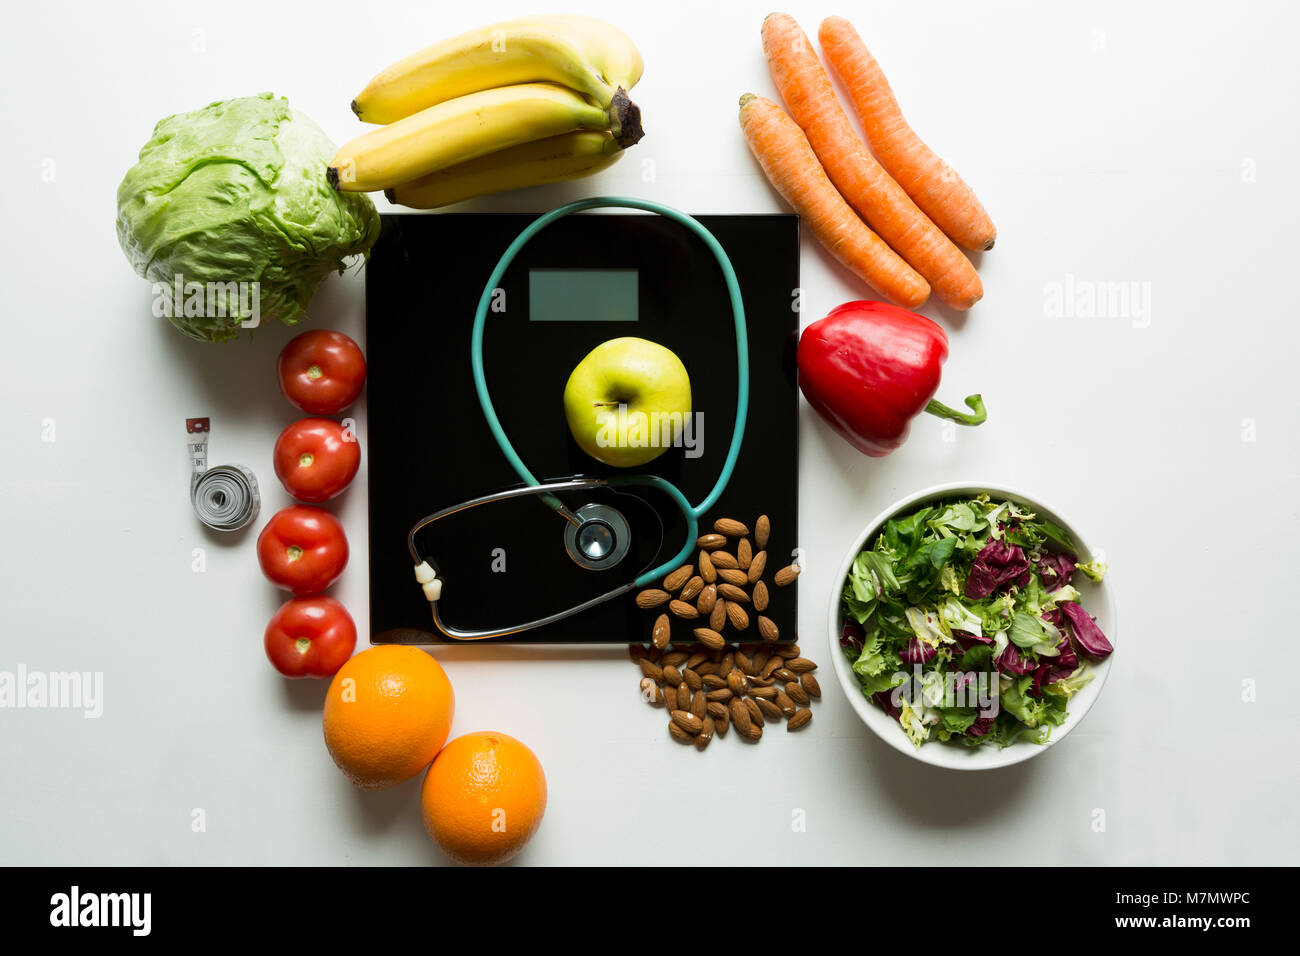 Healthy fruit,vegetables and stethoscope on scales. Weight loss and right nutrition concept - Stock Image